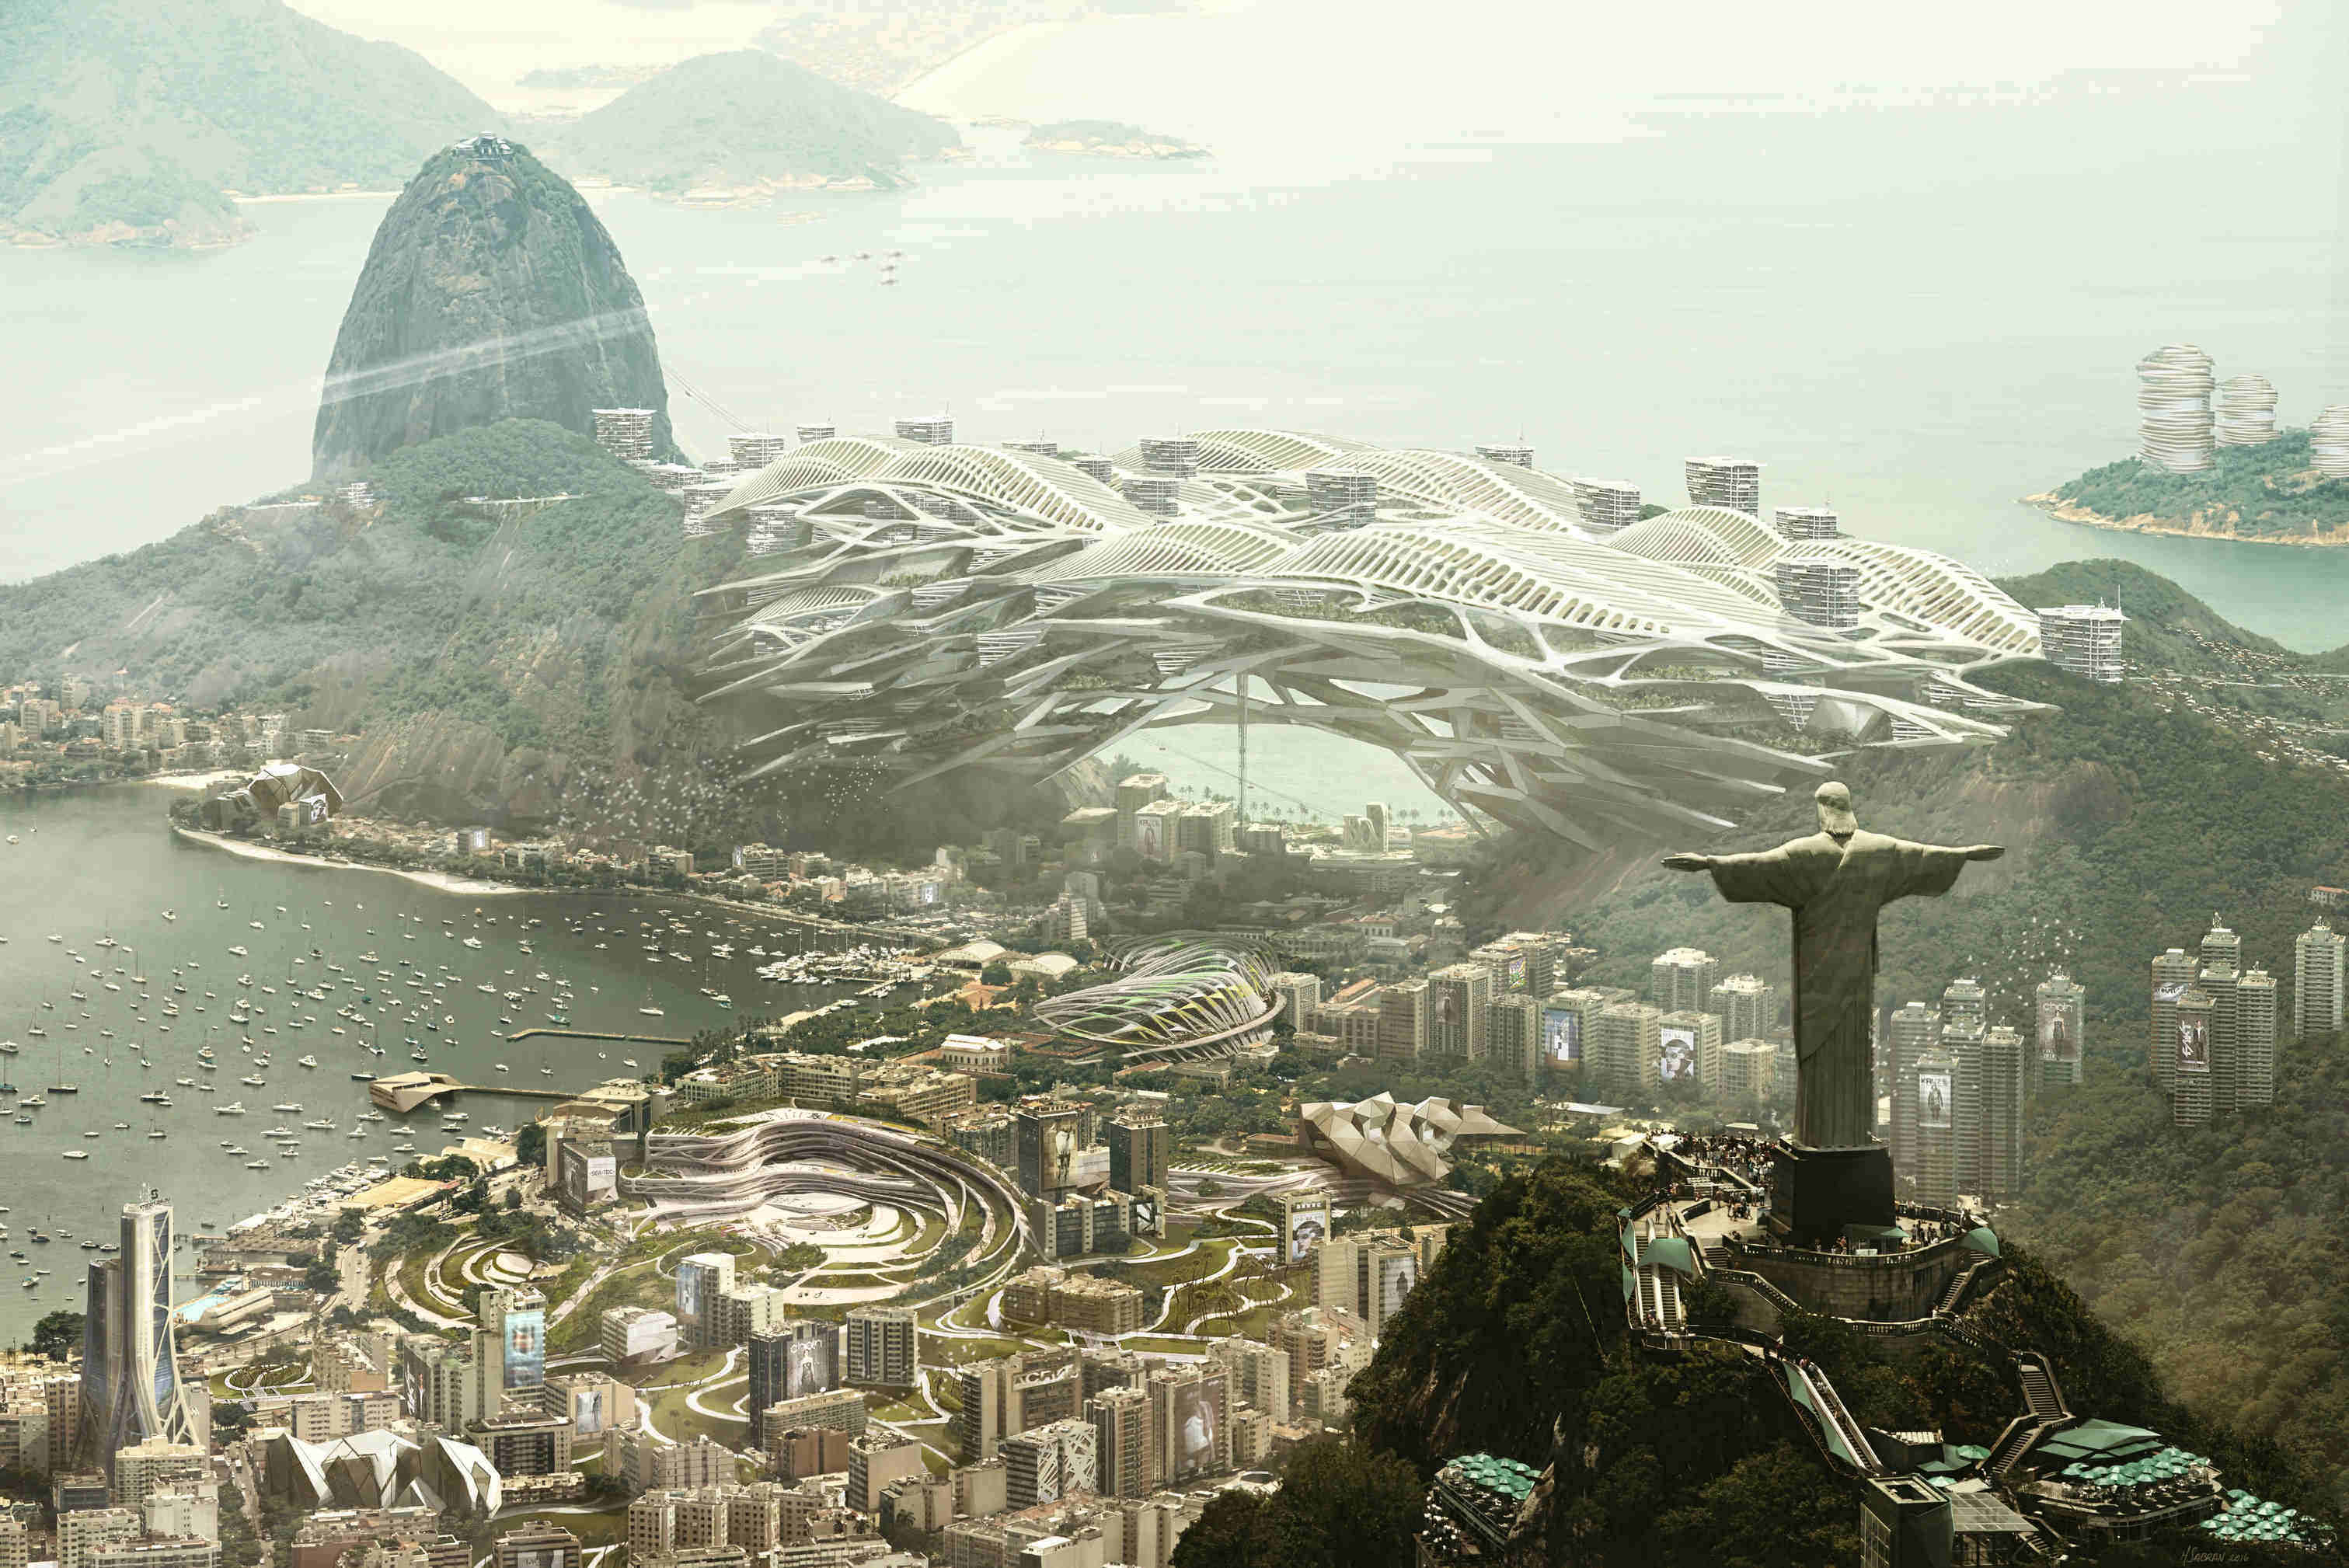 rsz_rio_cities_of_2029_dxmd